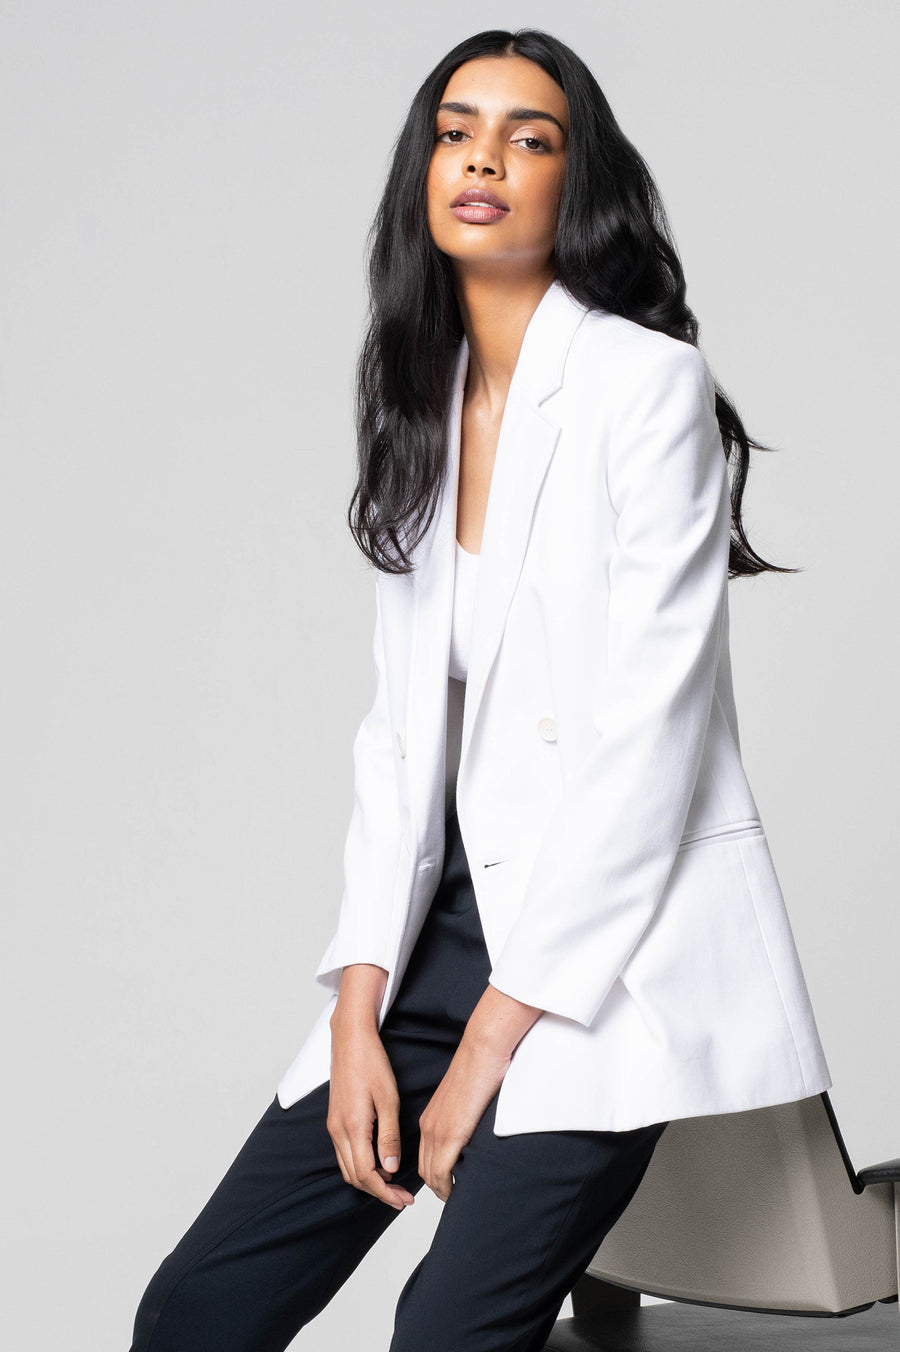 The White Sailor Jacket features padded shoulders, double-breasted lapels, and a square-shape loose fit.